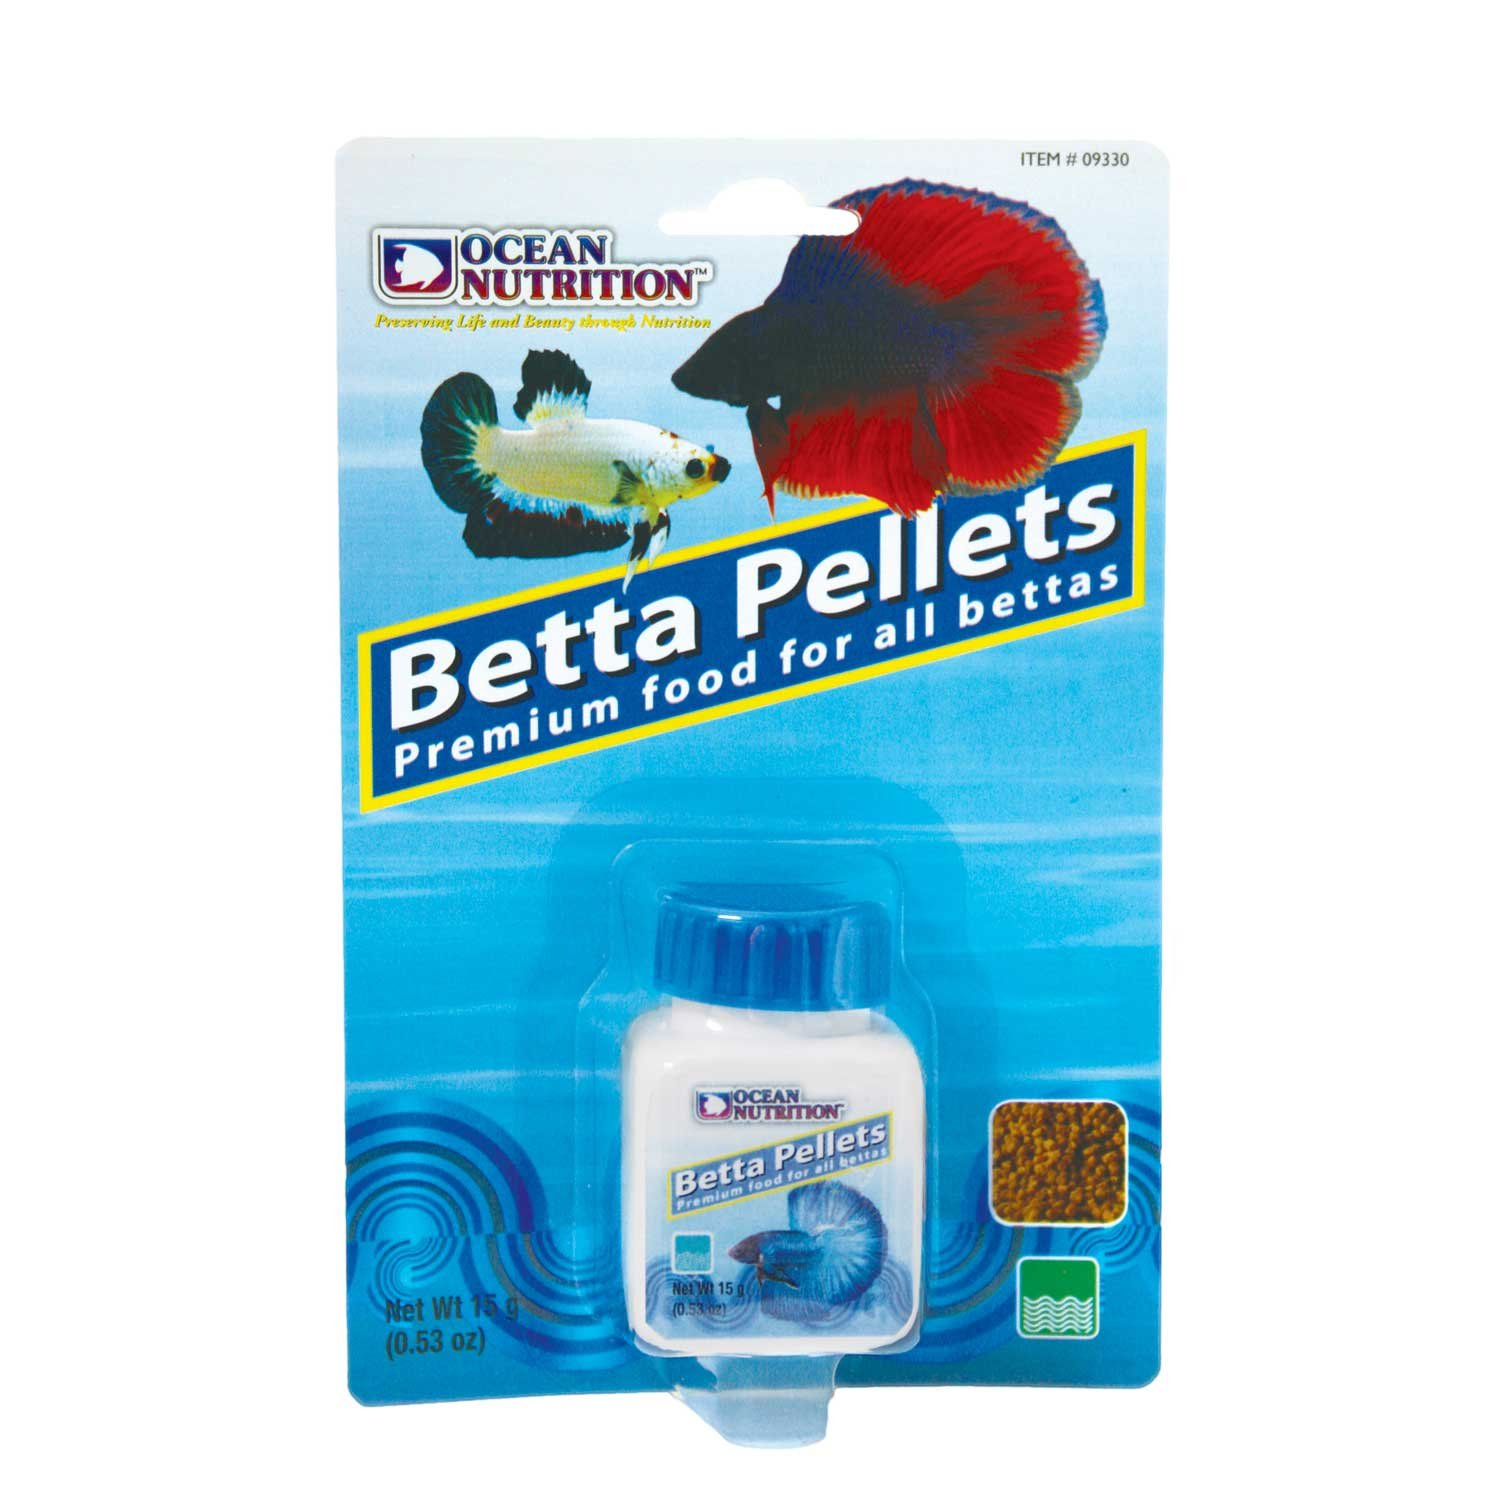 Ocean nutrition betta pellets petco for Types of betta fish petco